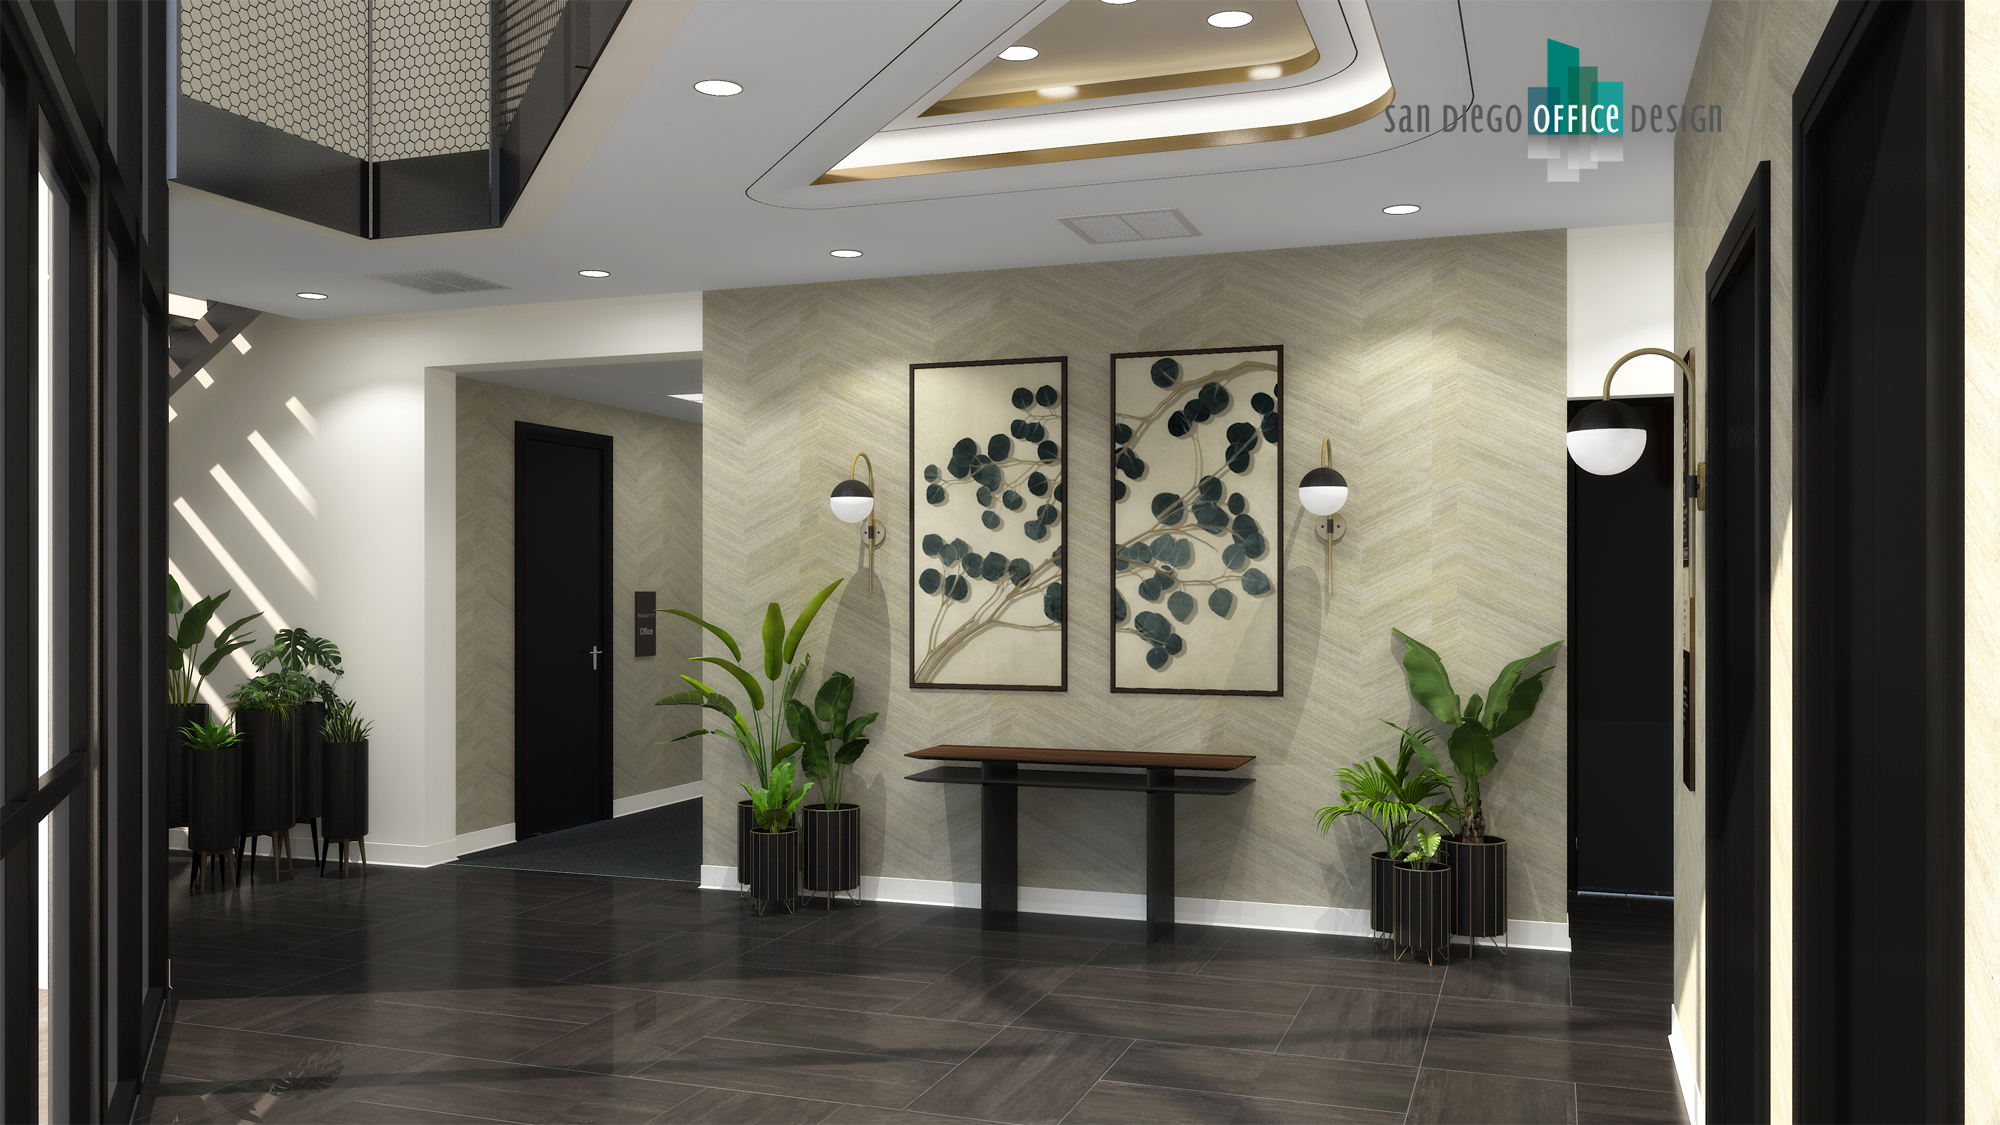 A lobby with potted plants, dark wood floors, and a patterned cream-colored wall.